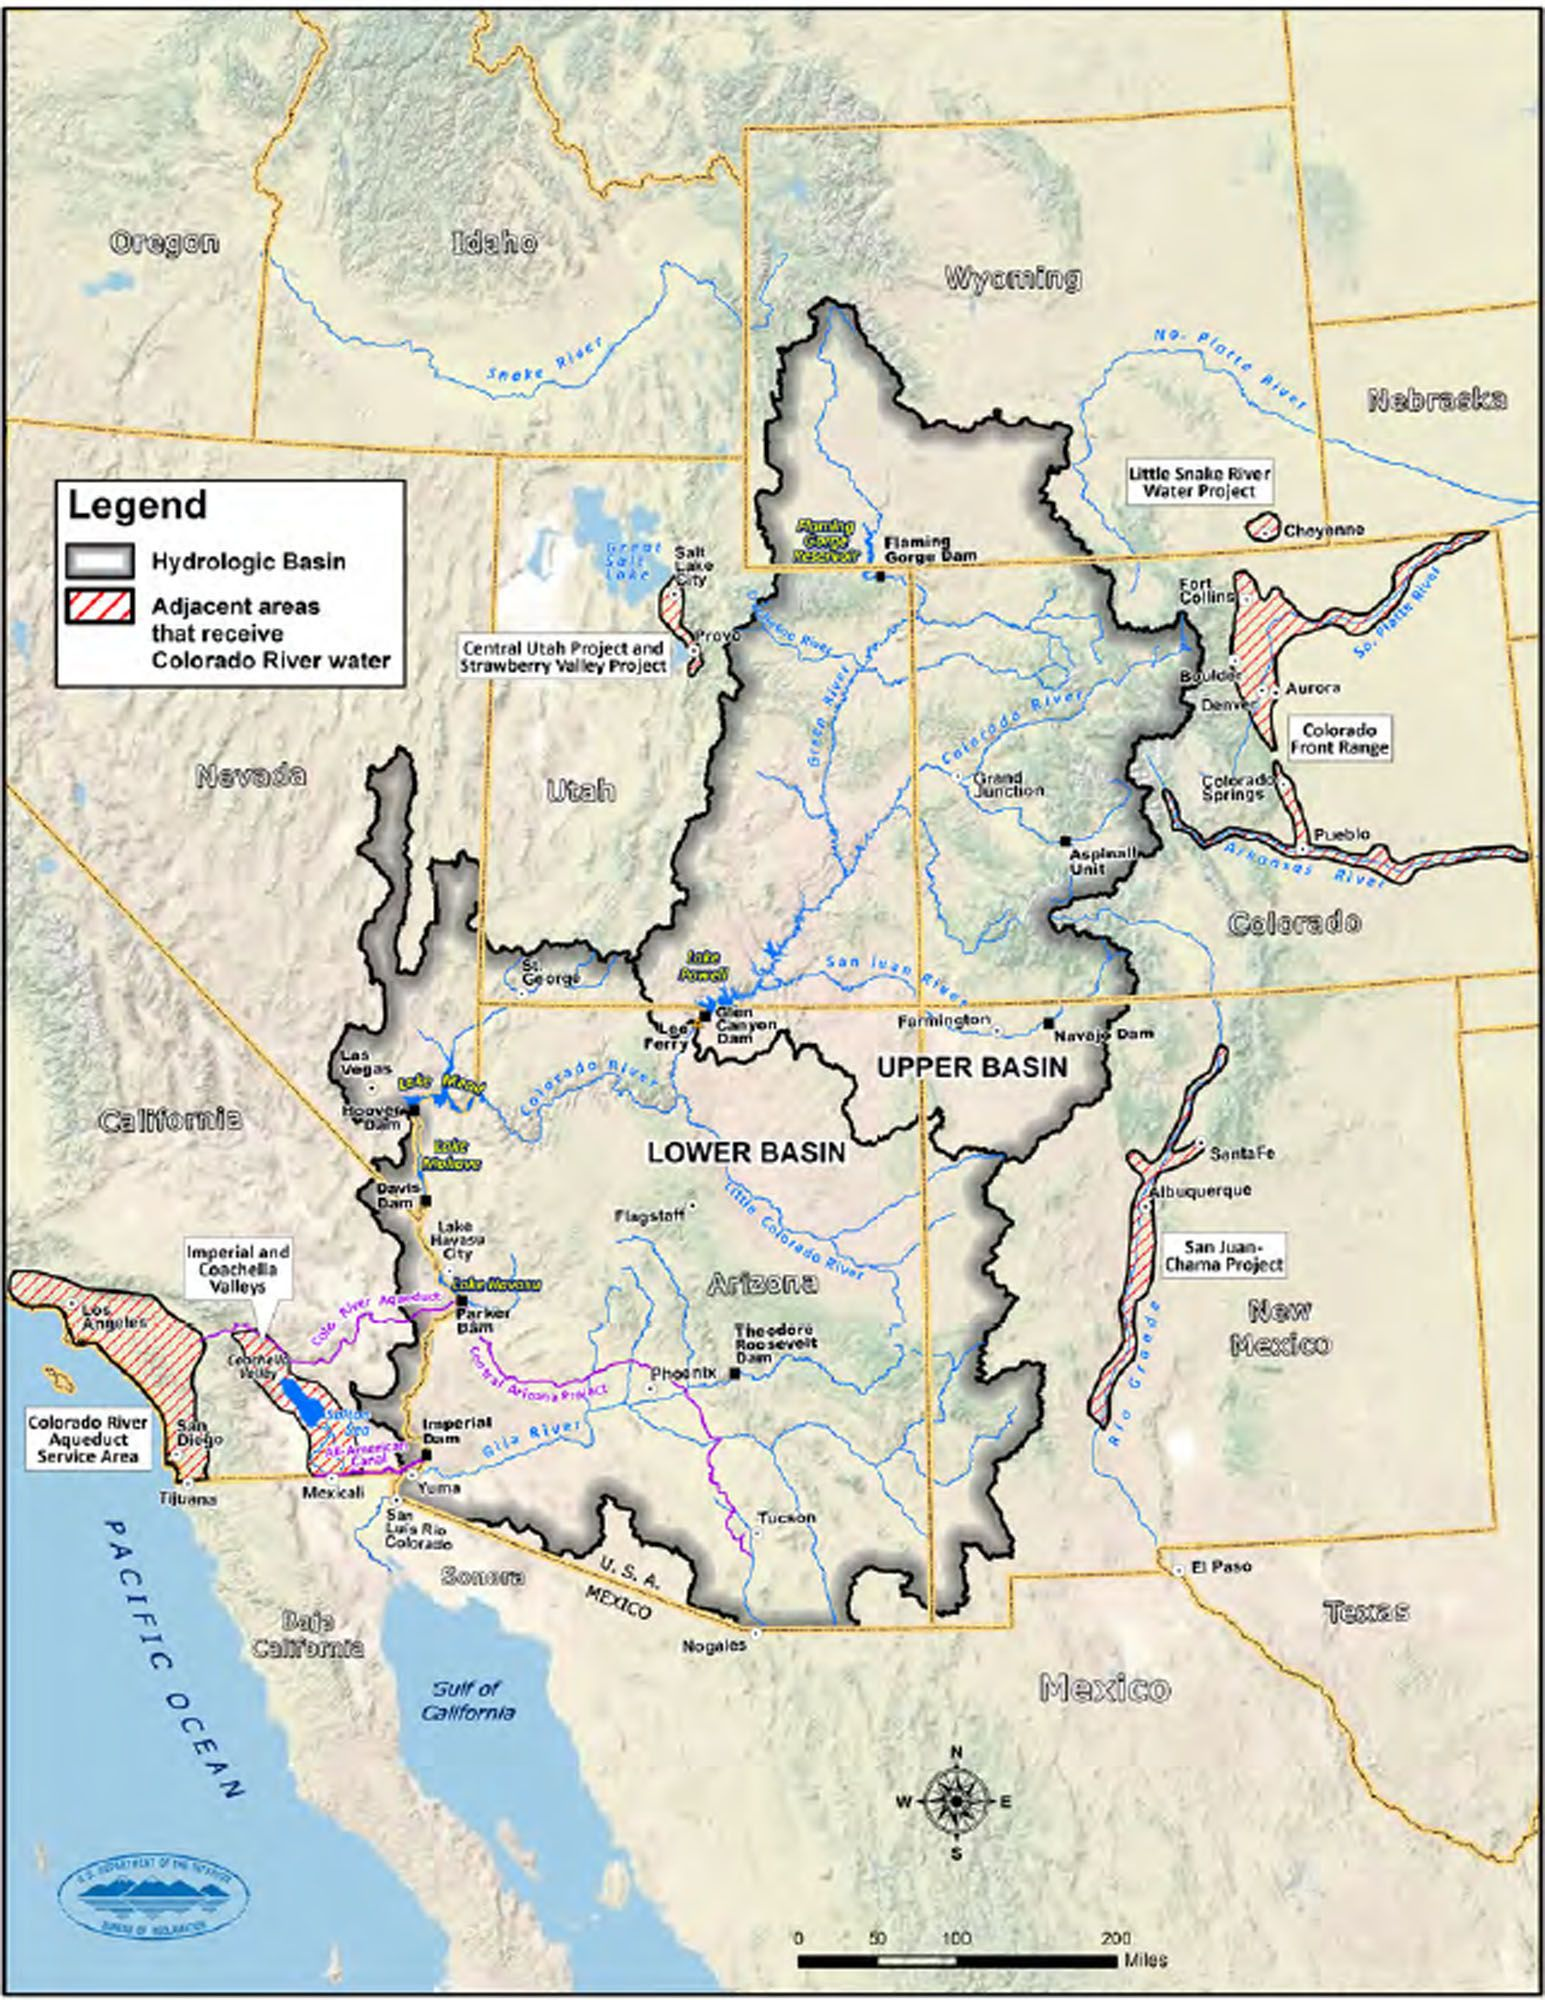 Demands On Colorado Again Make It Nations Mostendangered River - Colorado river world map